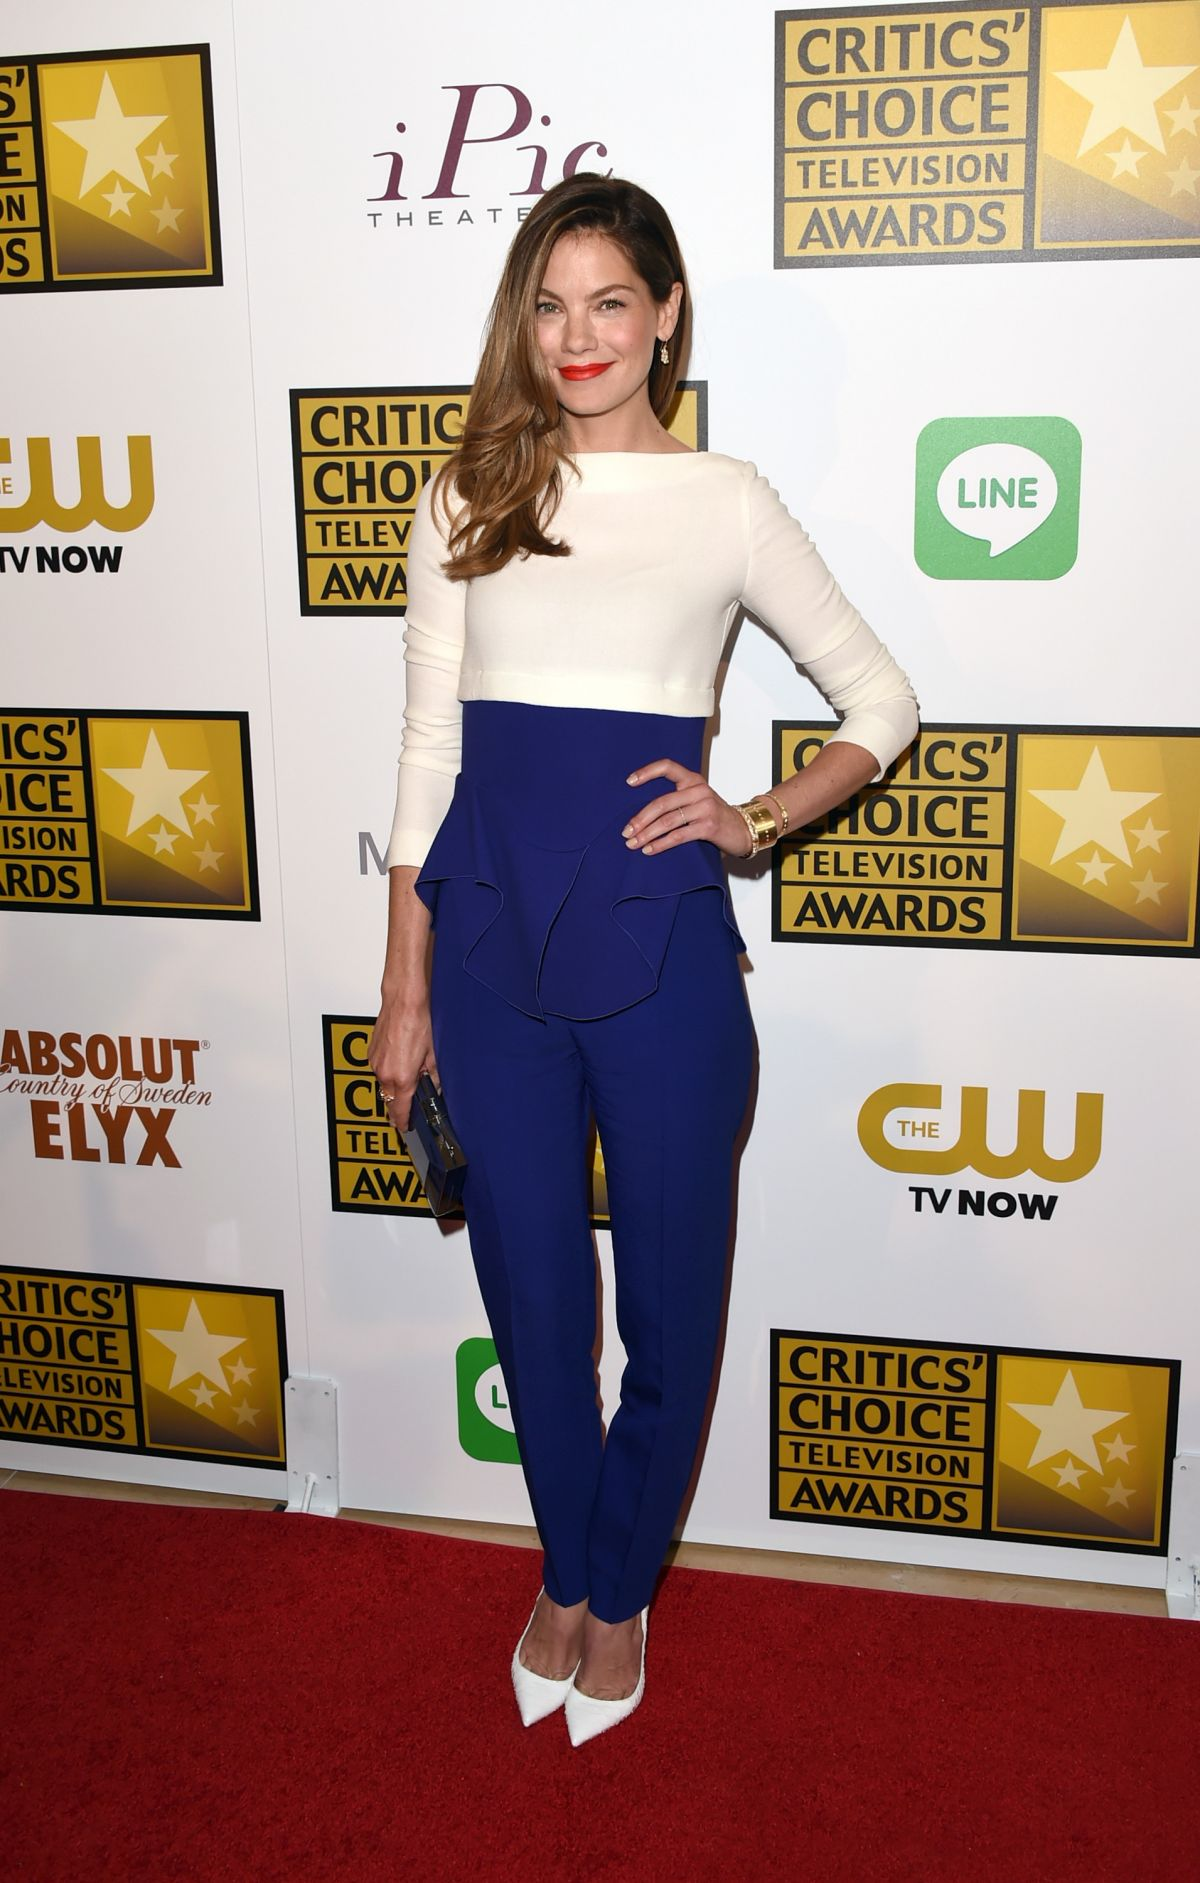 MICHELLE MONAGHAN at 2014 Critics Choice Television Awards in Beverly Hills